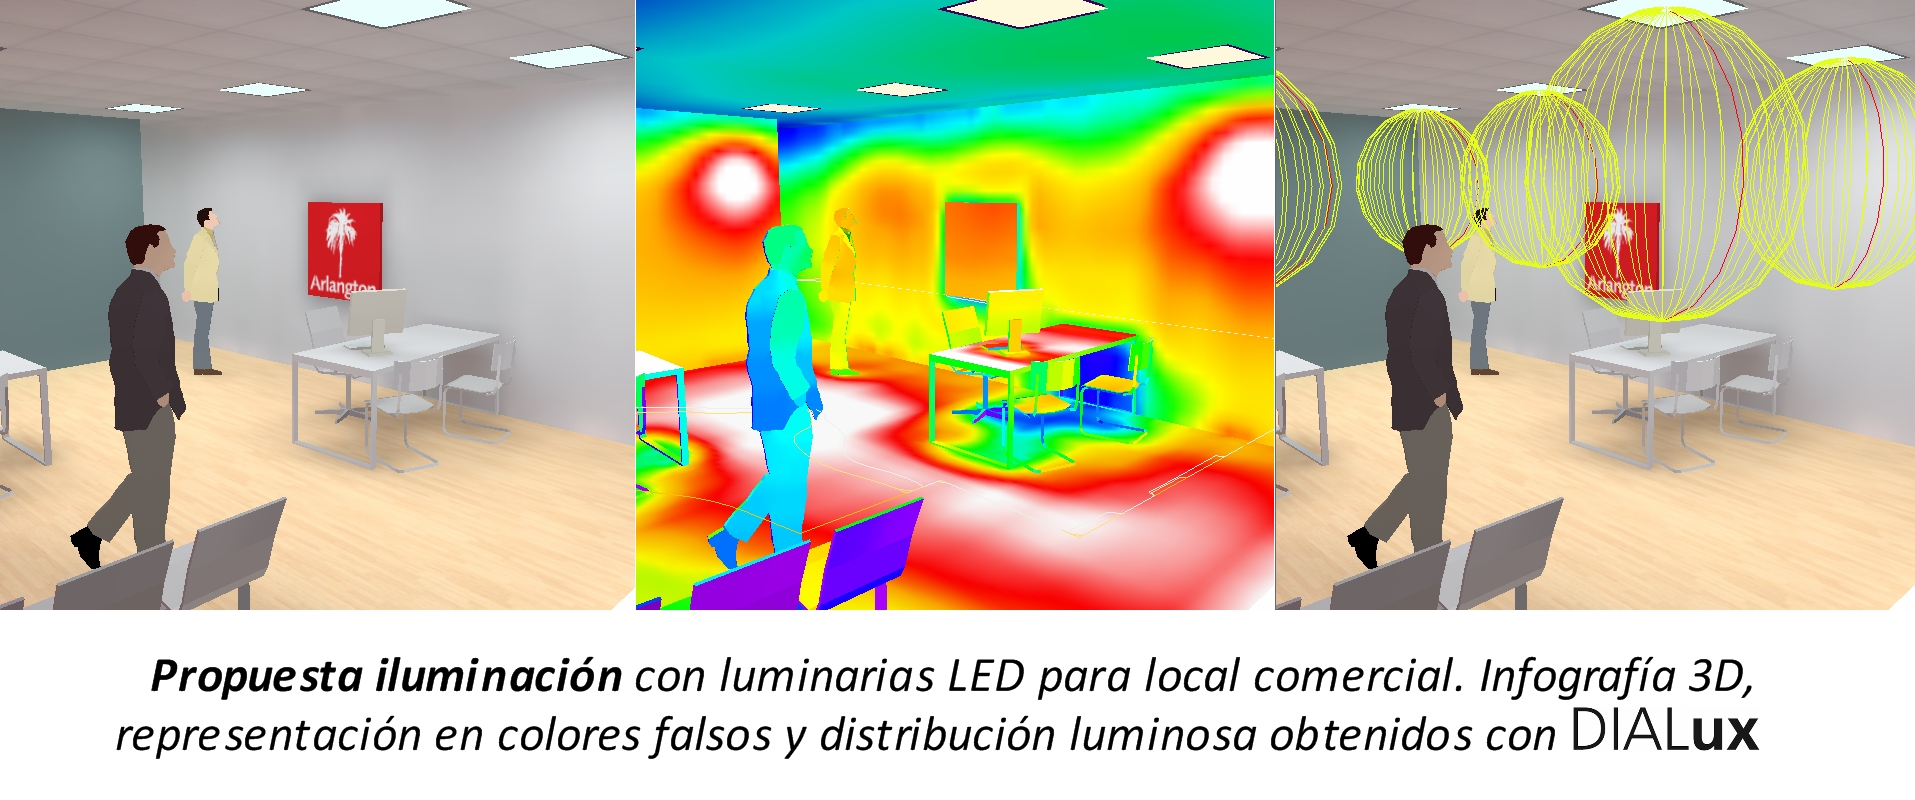 Propuesta LED local comercial